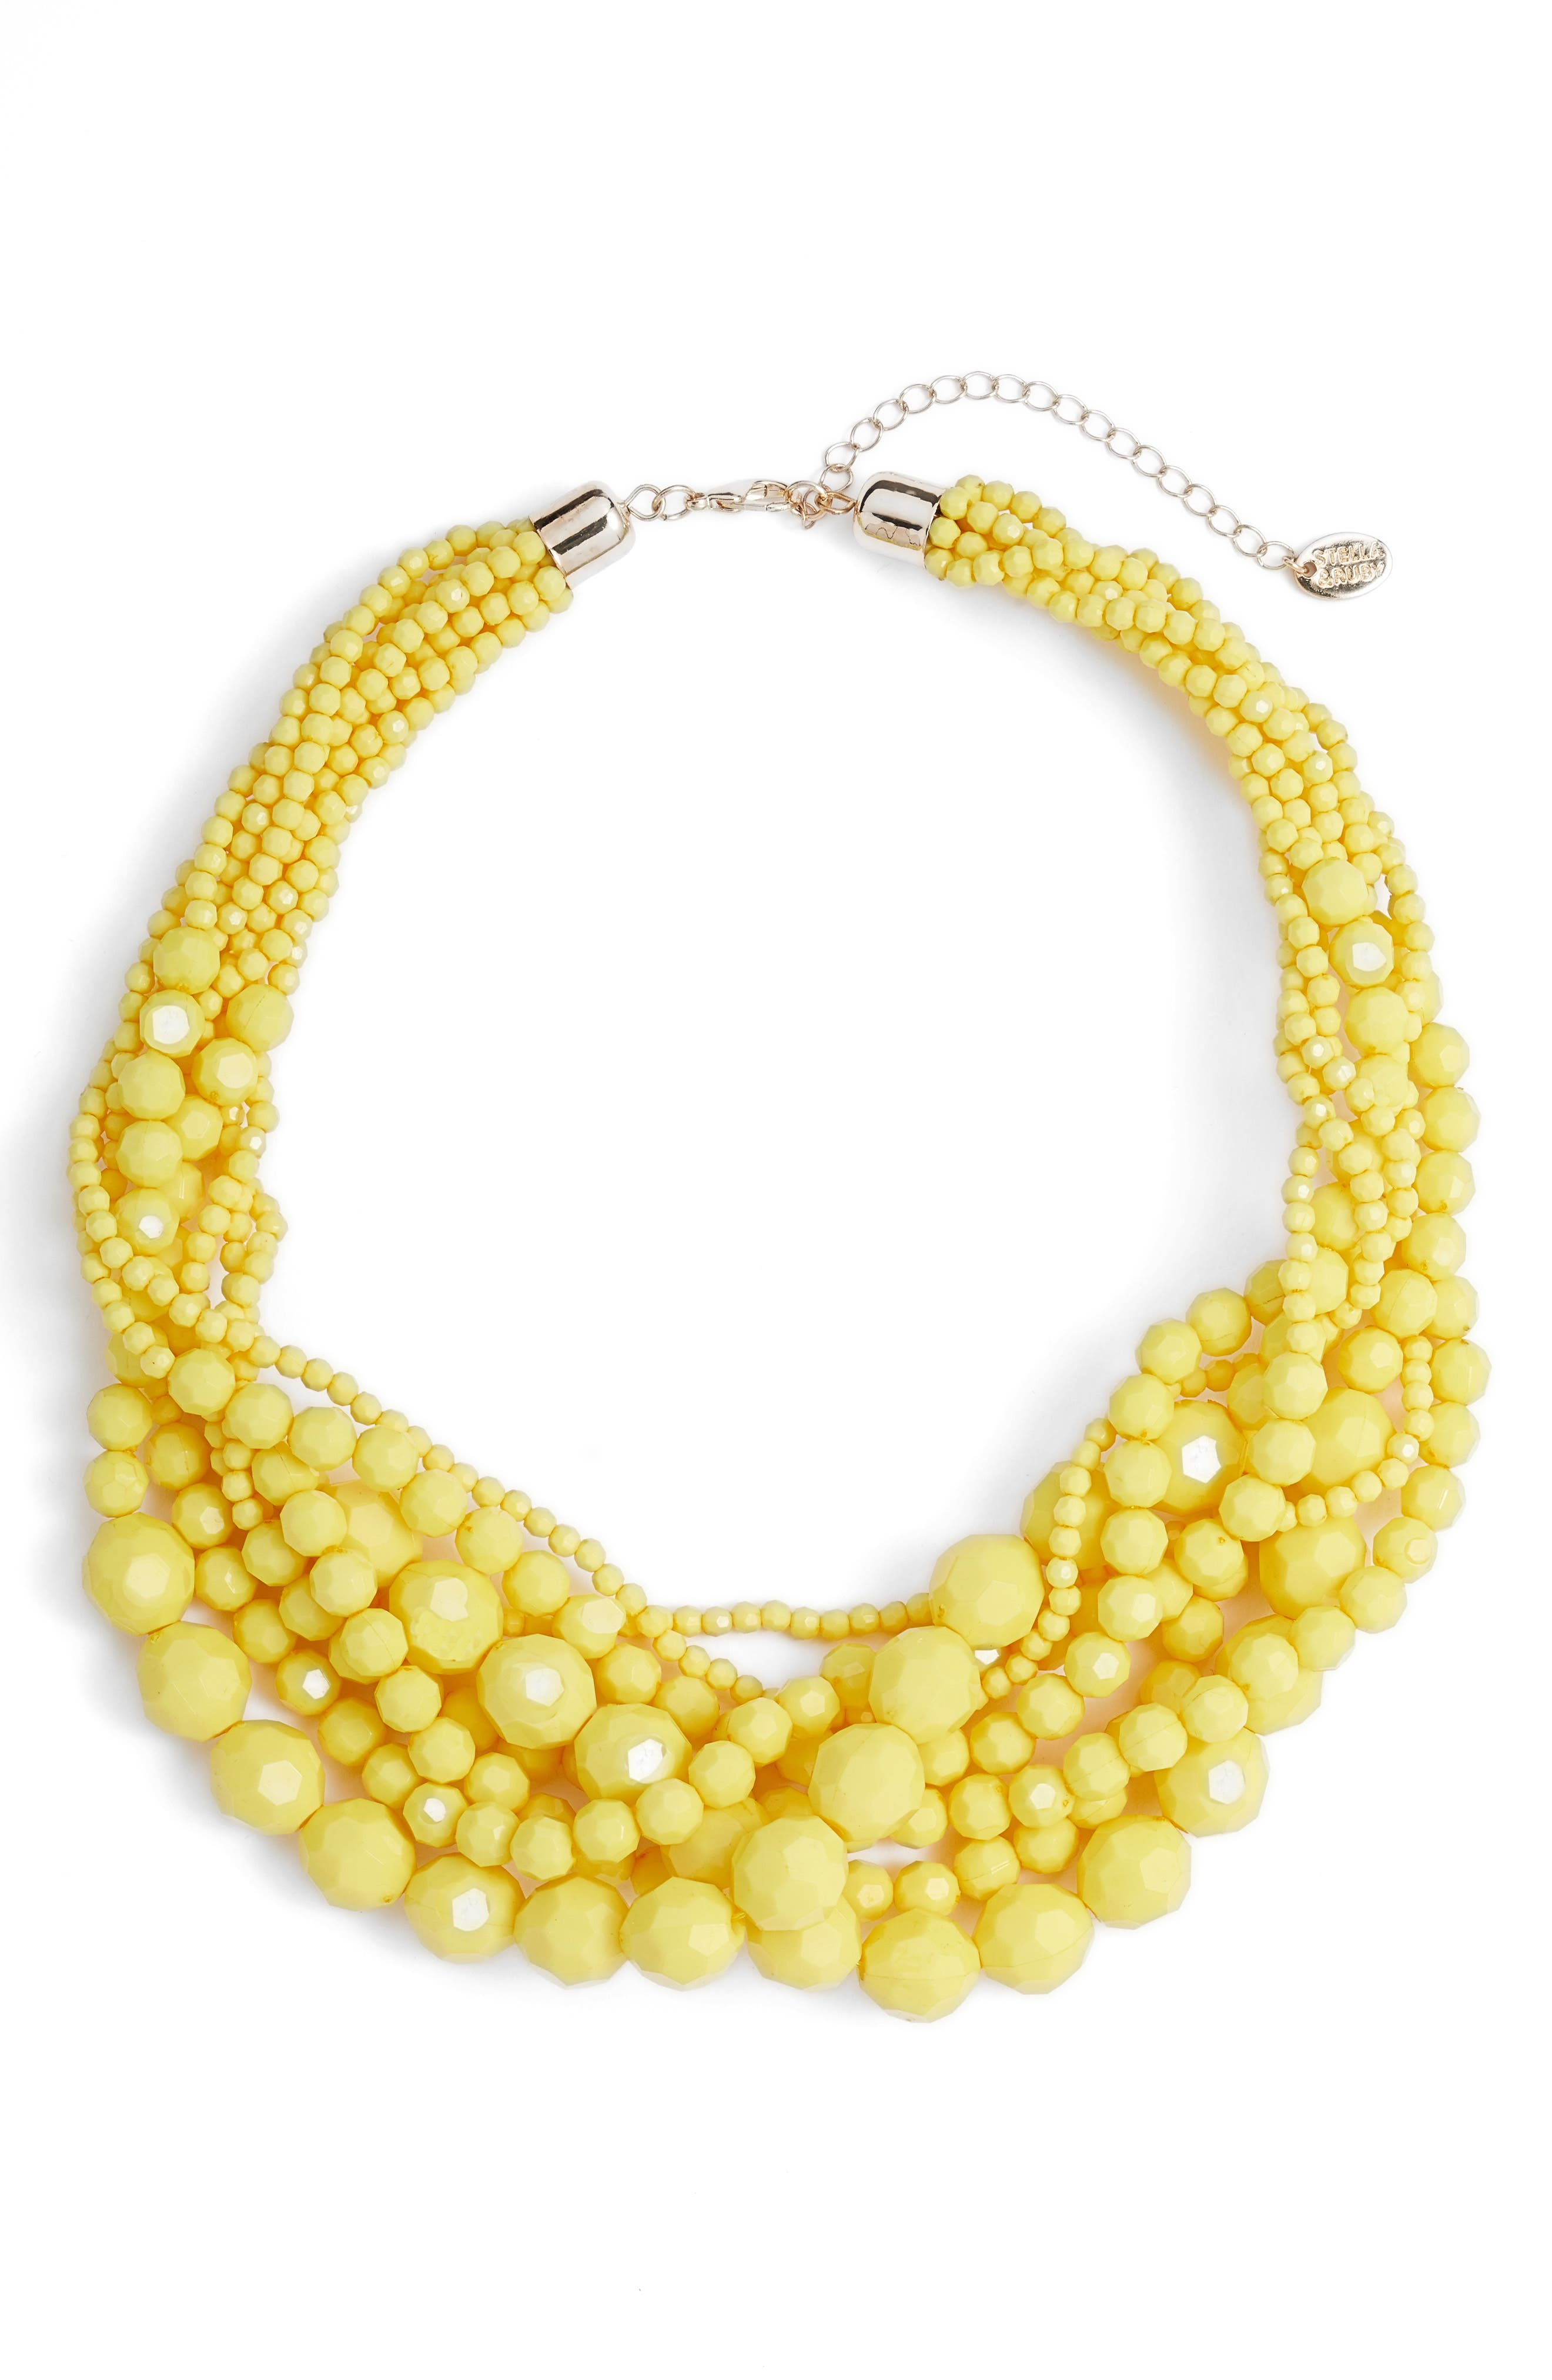 Multi Strand Beaded Necklace,                             Main thumbnail 1, color,                             GOLD/ YELLOW